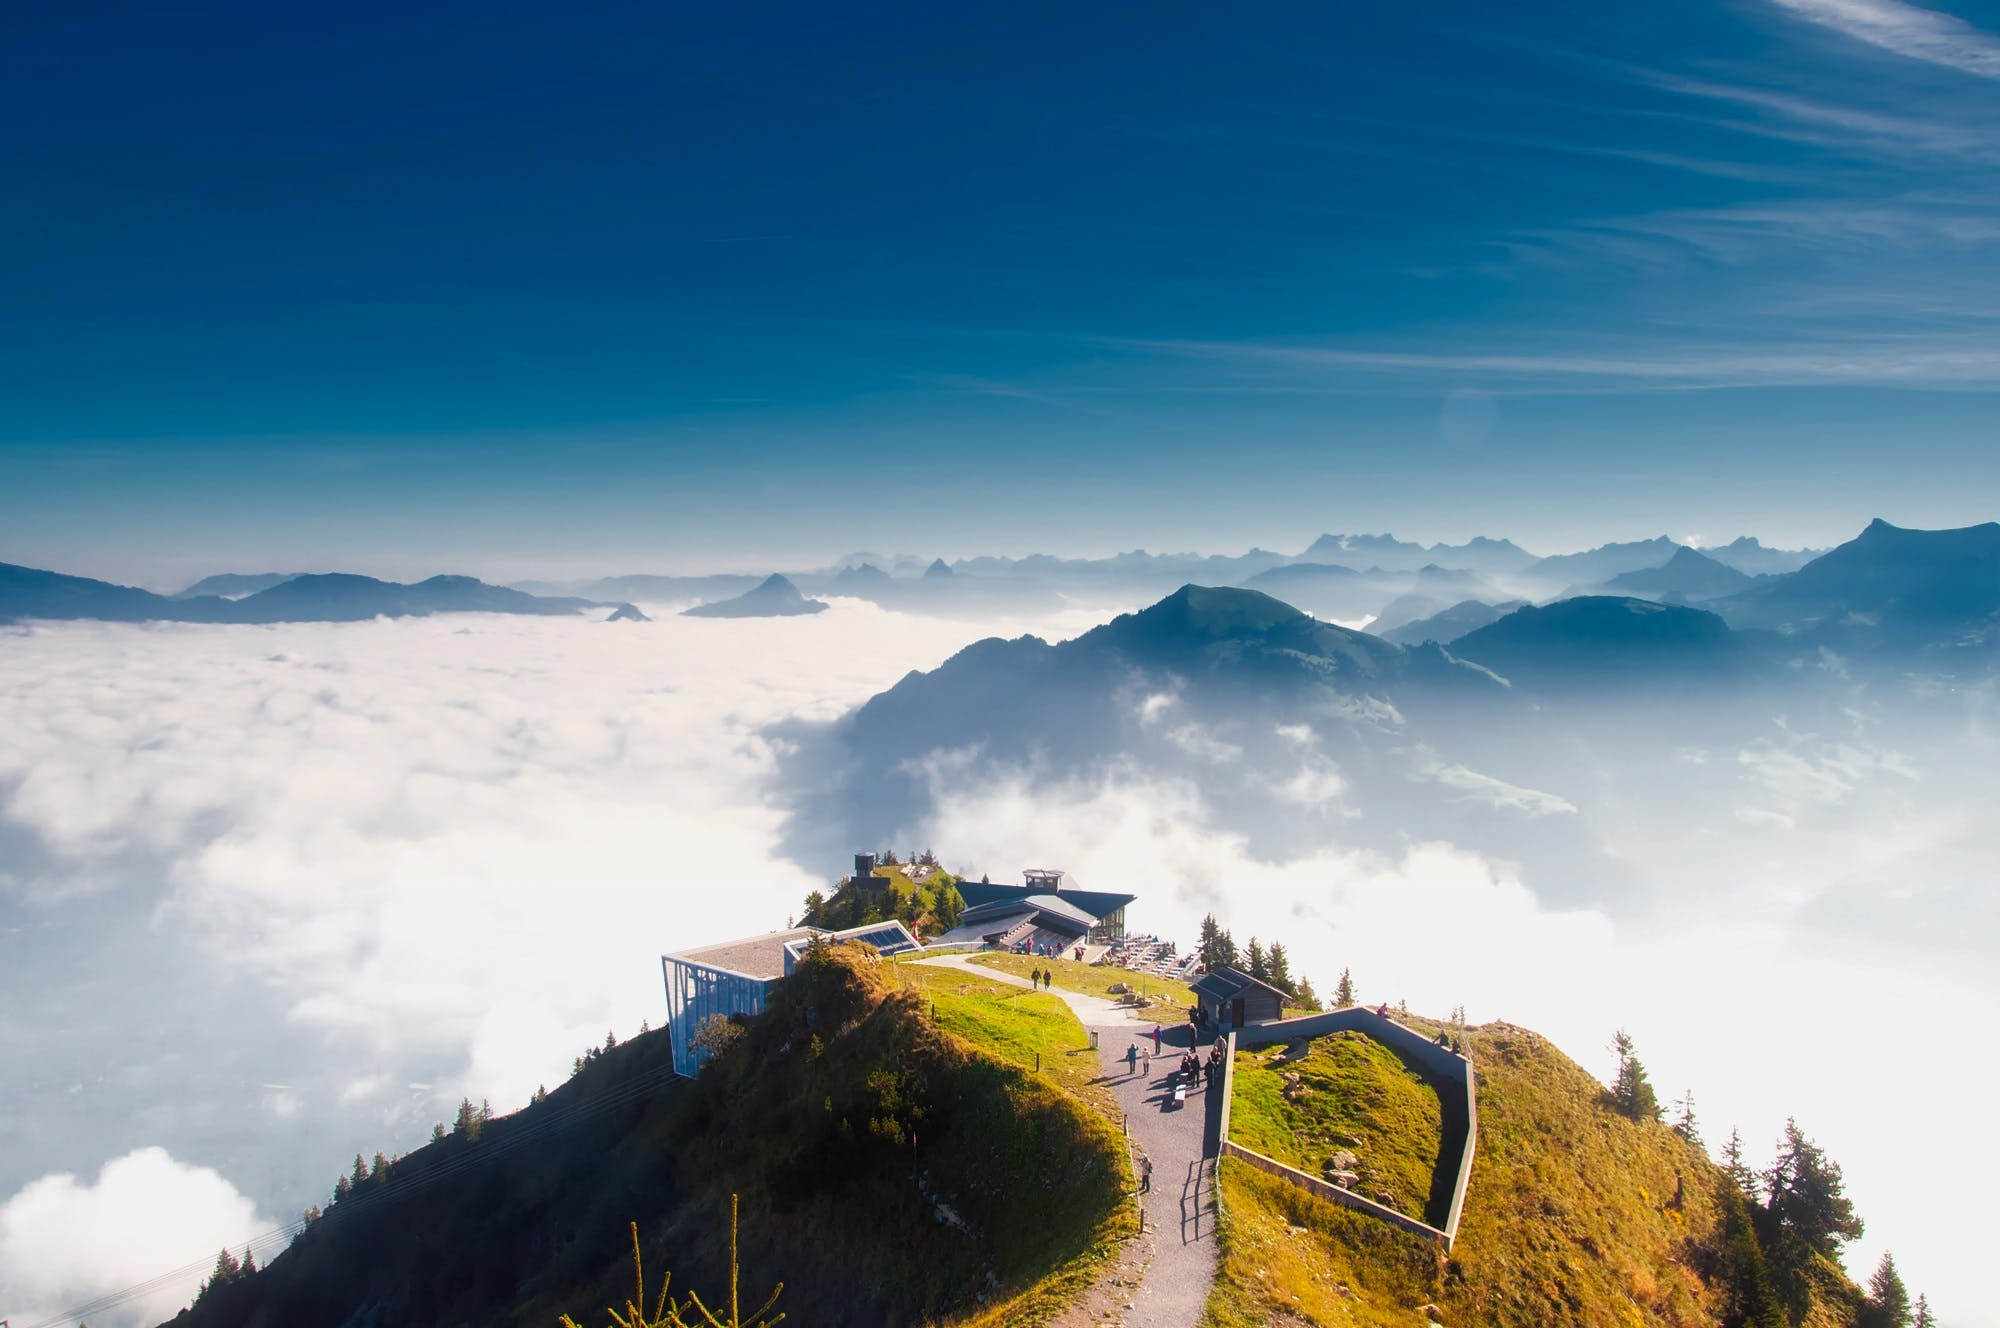 Birds Eye View of House on Hill over White Clouds